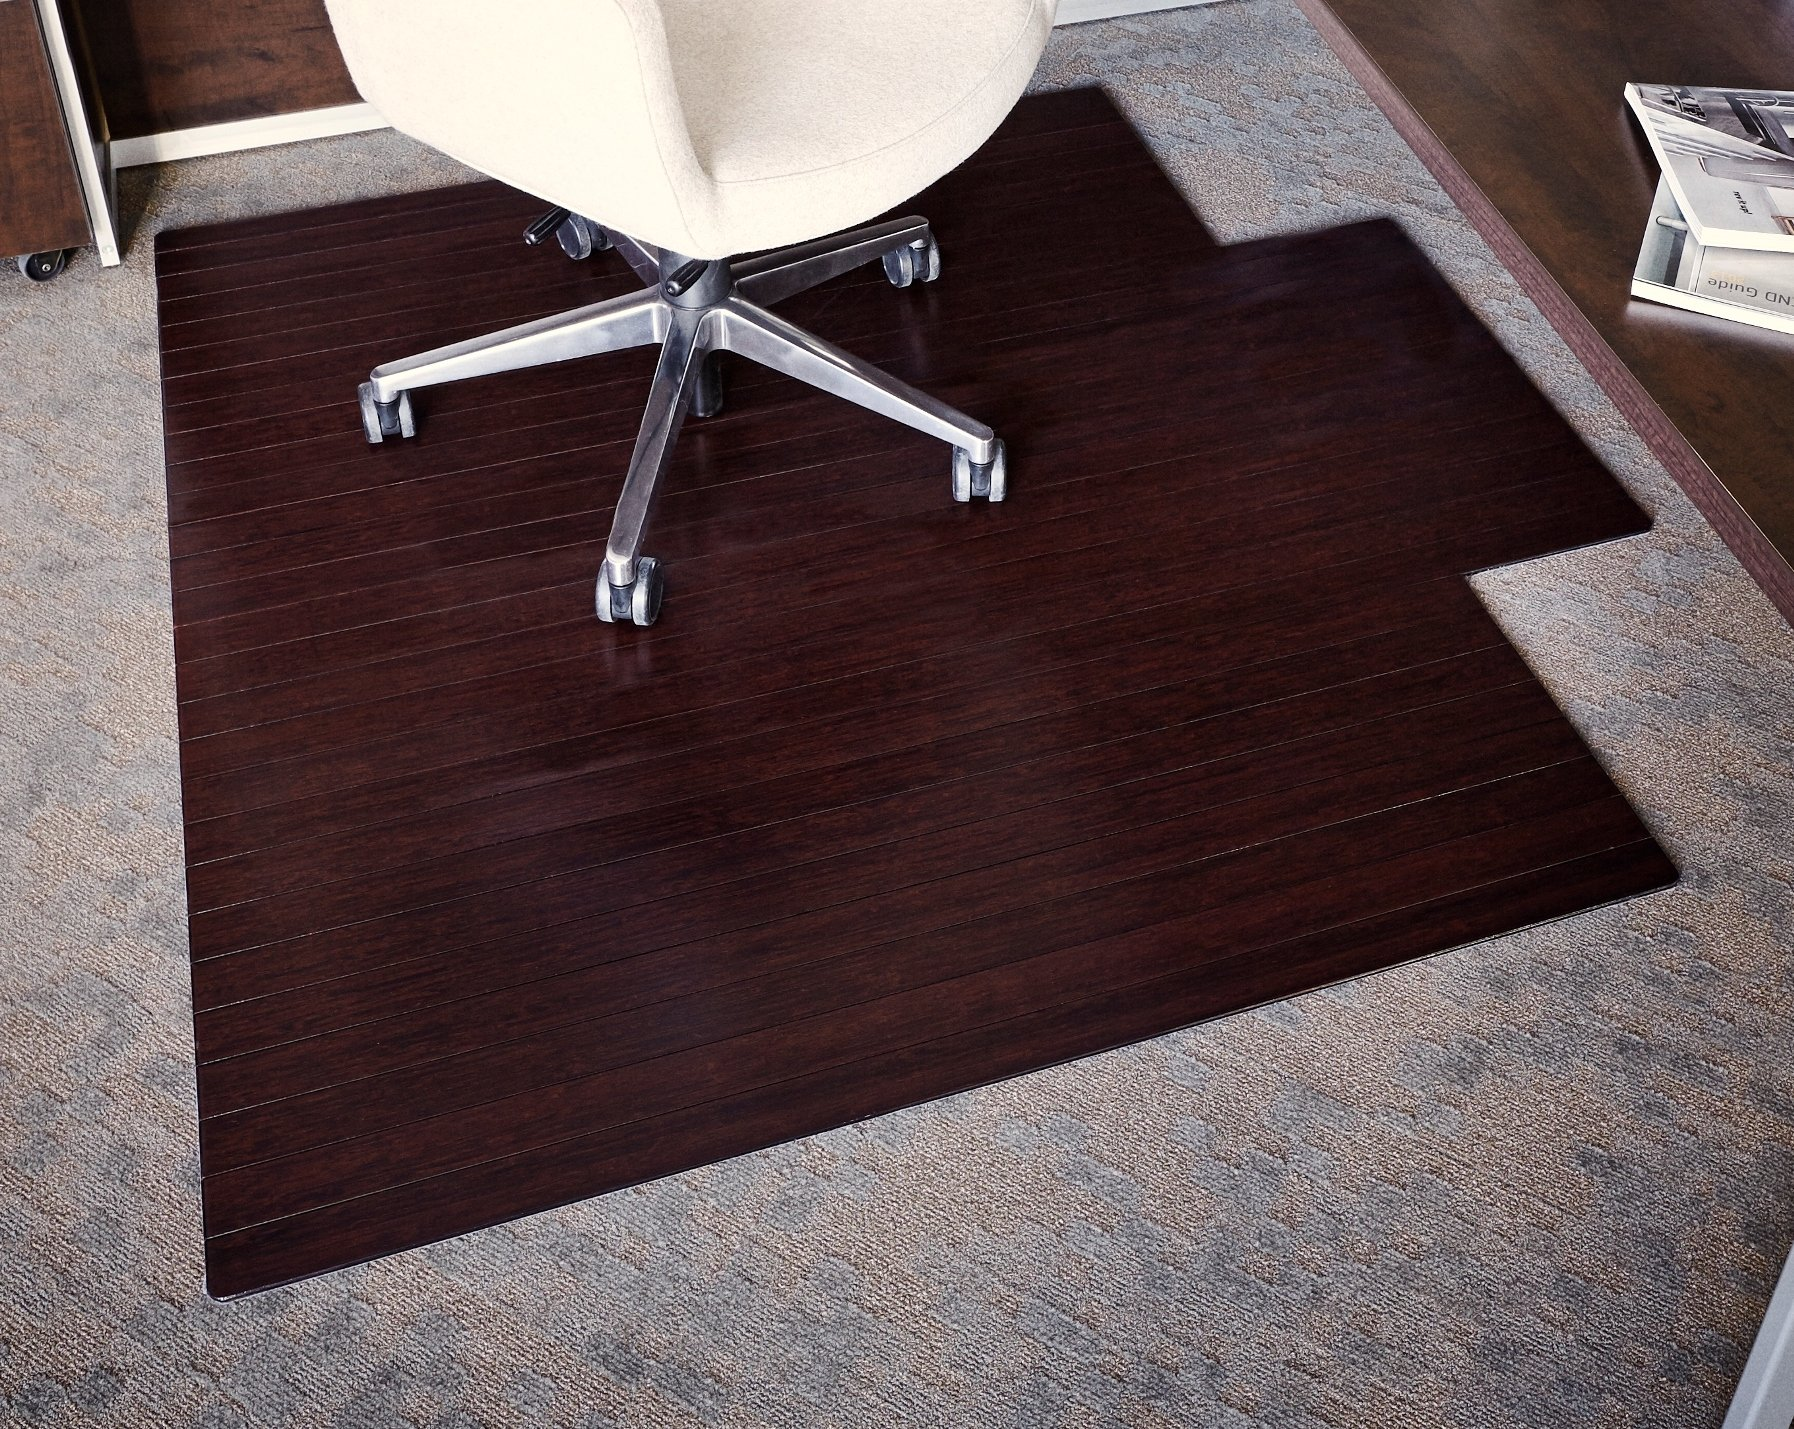 Anji Mountain AMB24009 Roll-Up Bamboo Chair Mat with Lip, Dark Cherry, 55 x 57, 5mm Thick